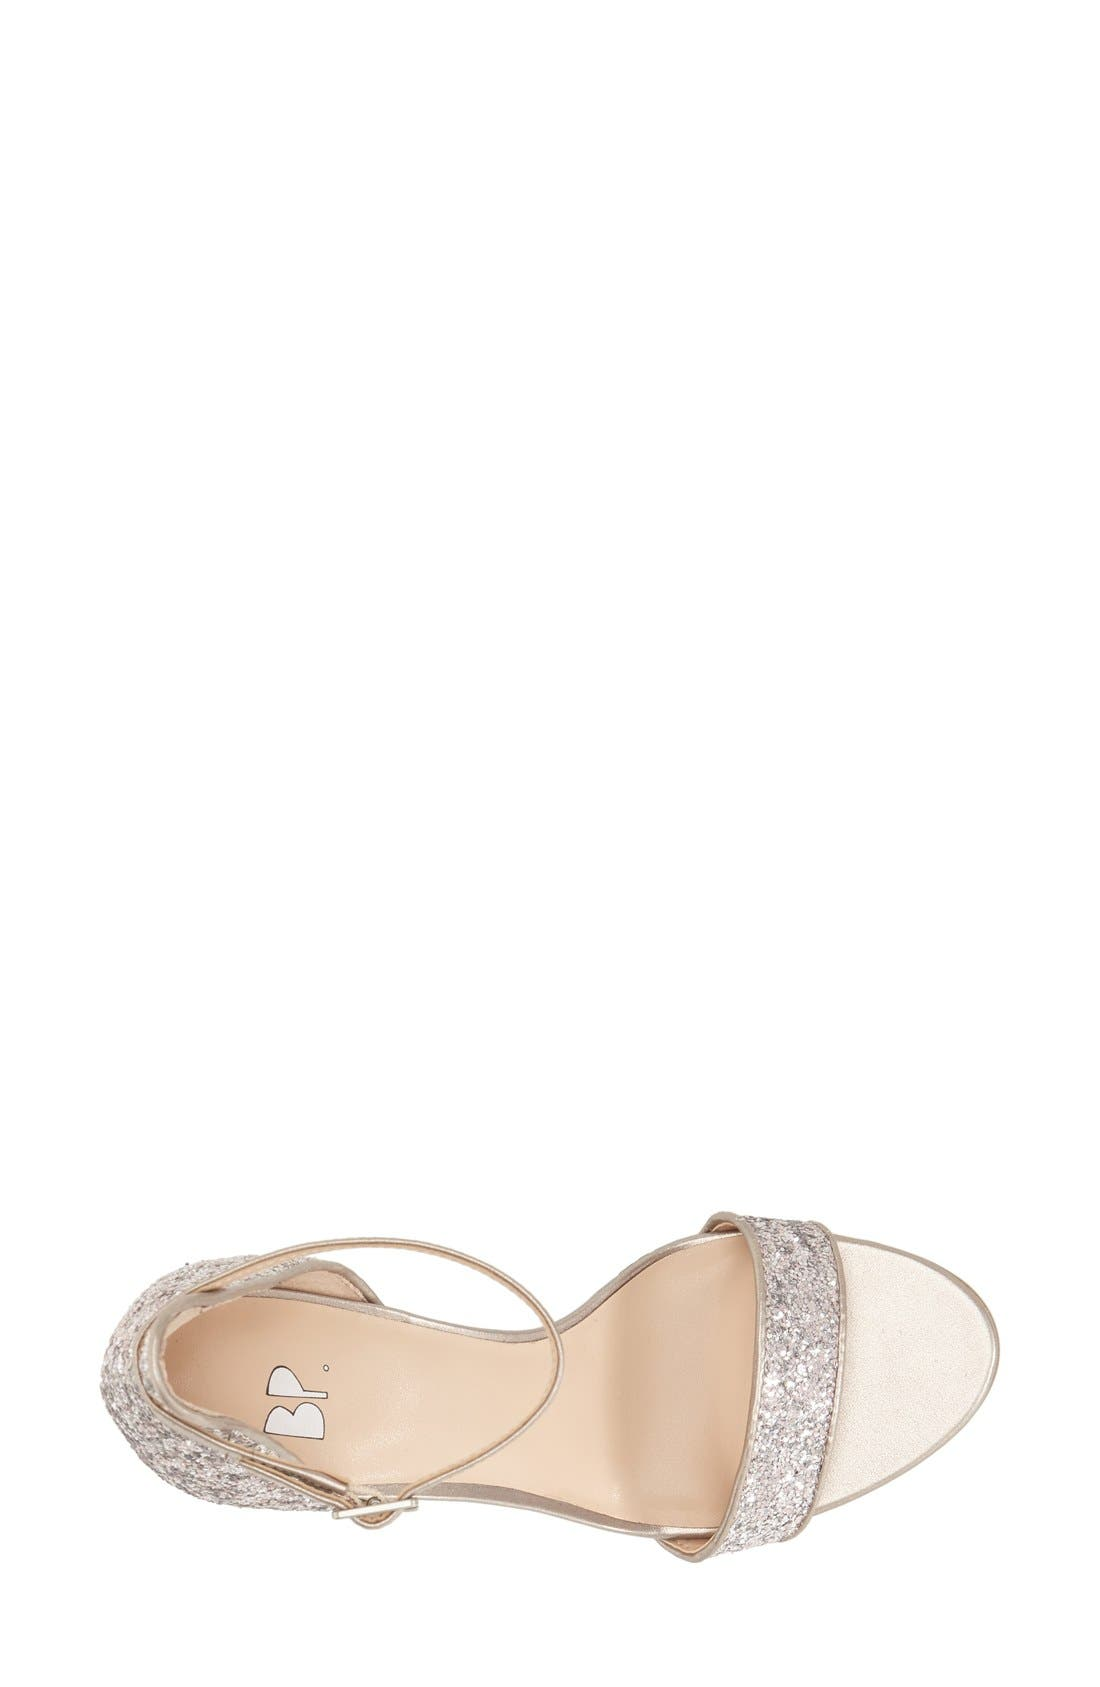 'Luminate' Open Toe Dress Sandal,                             Alternate thumbnail 138, color,